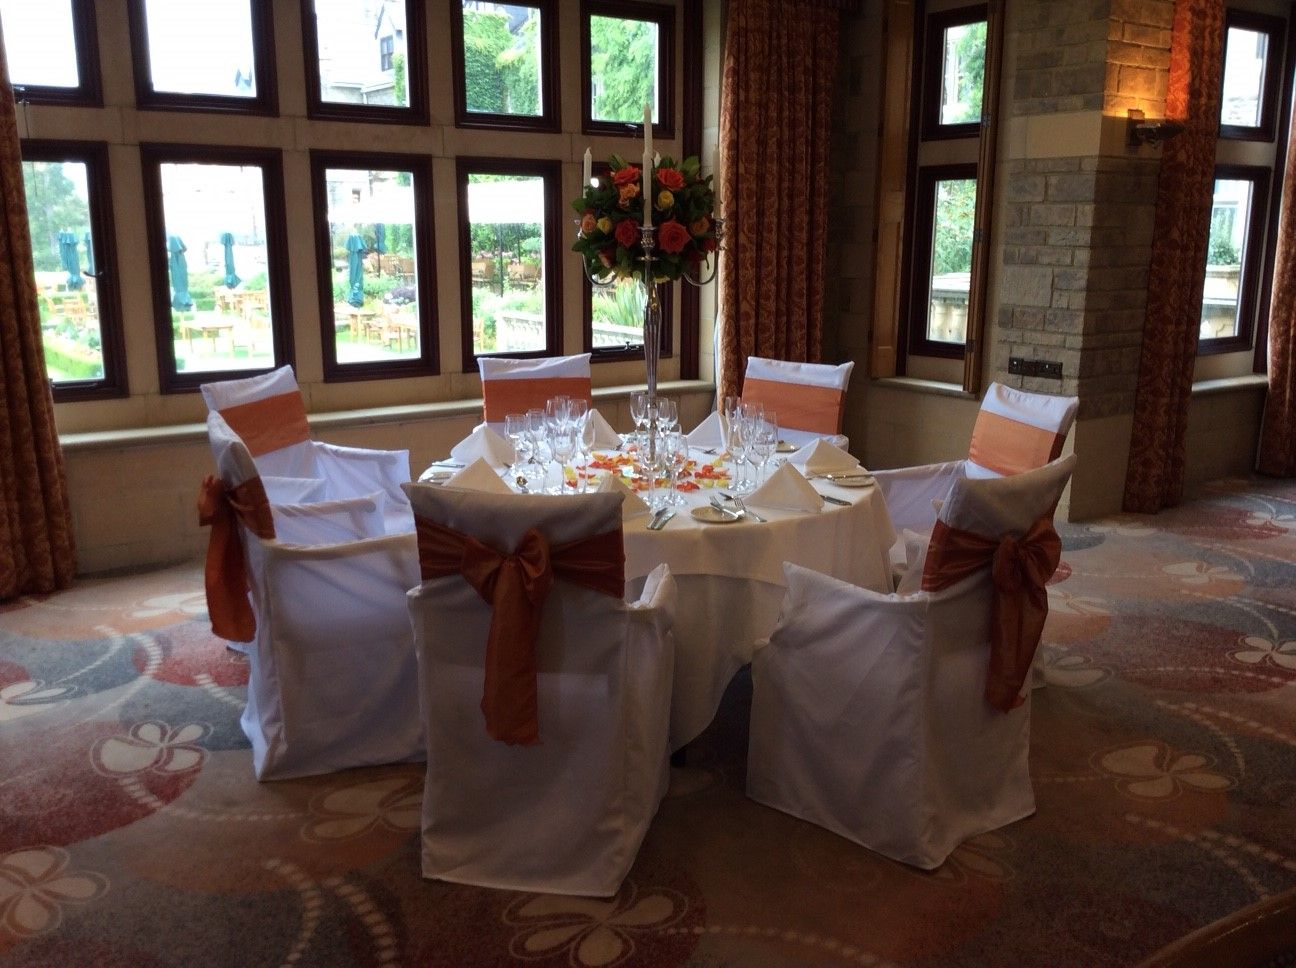 Wedding Chair Cover Hire Brighton Desk And Set For Toddlers South Lodge Hotel Sussex Venue Chairs Covers From Pollen4hire Floral Candelabra Table Centrepiece Flowers Pollen Of